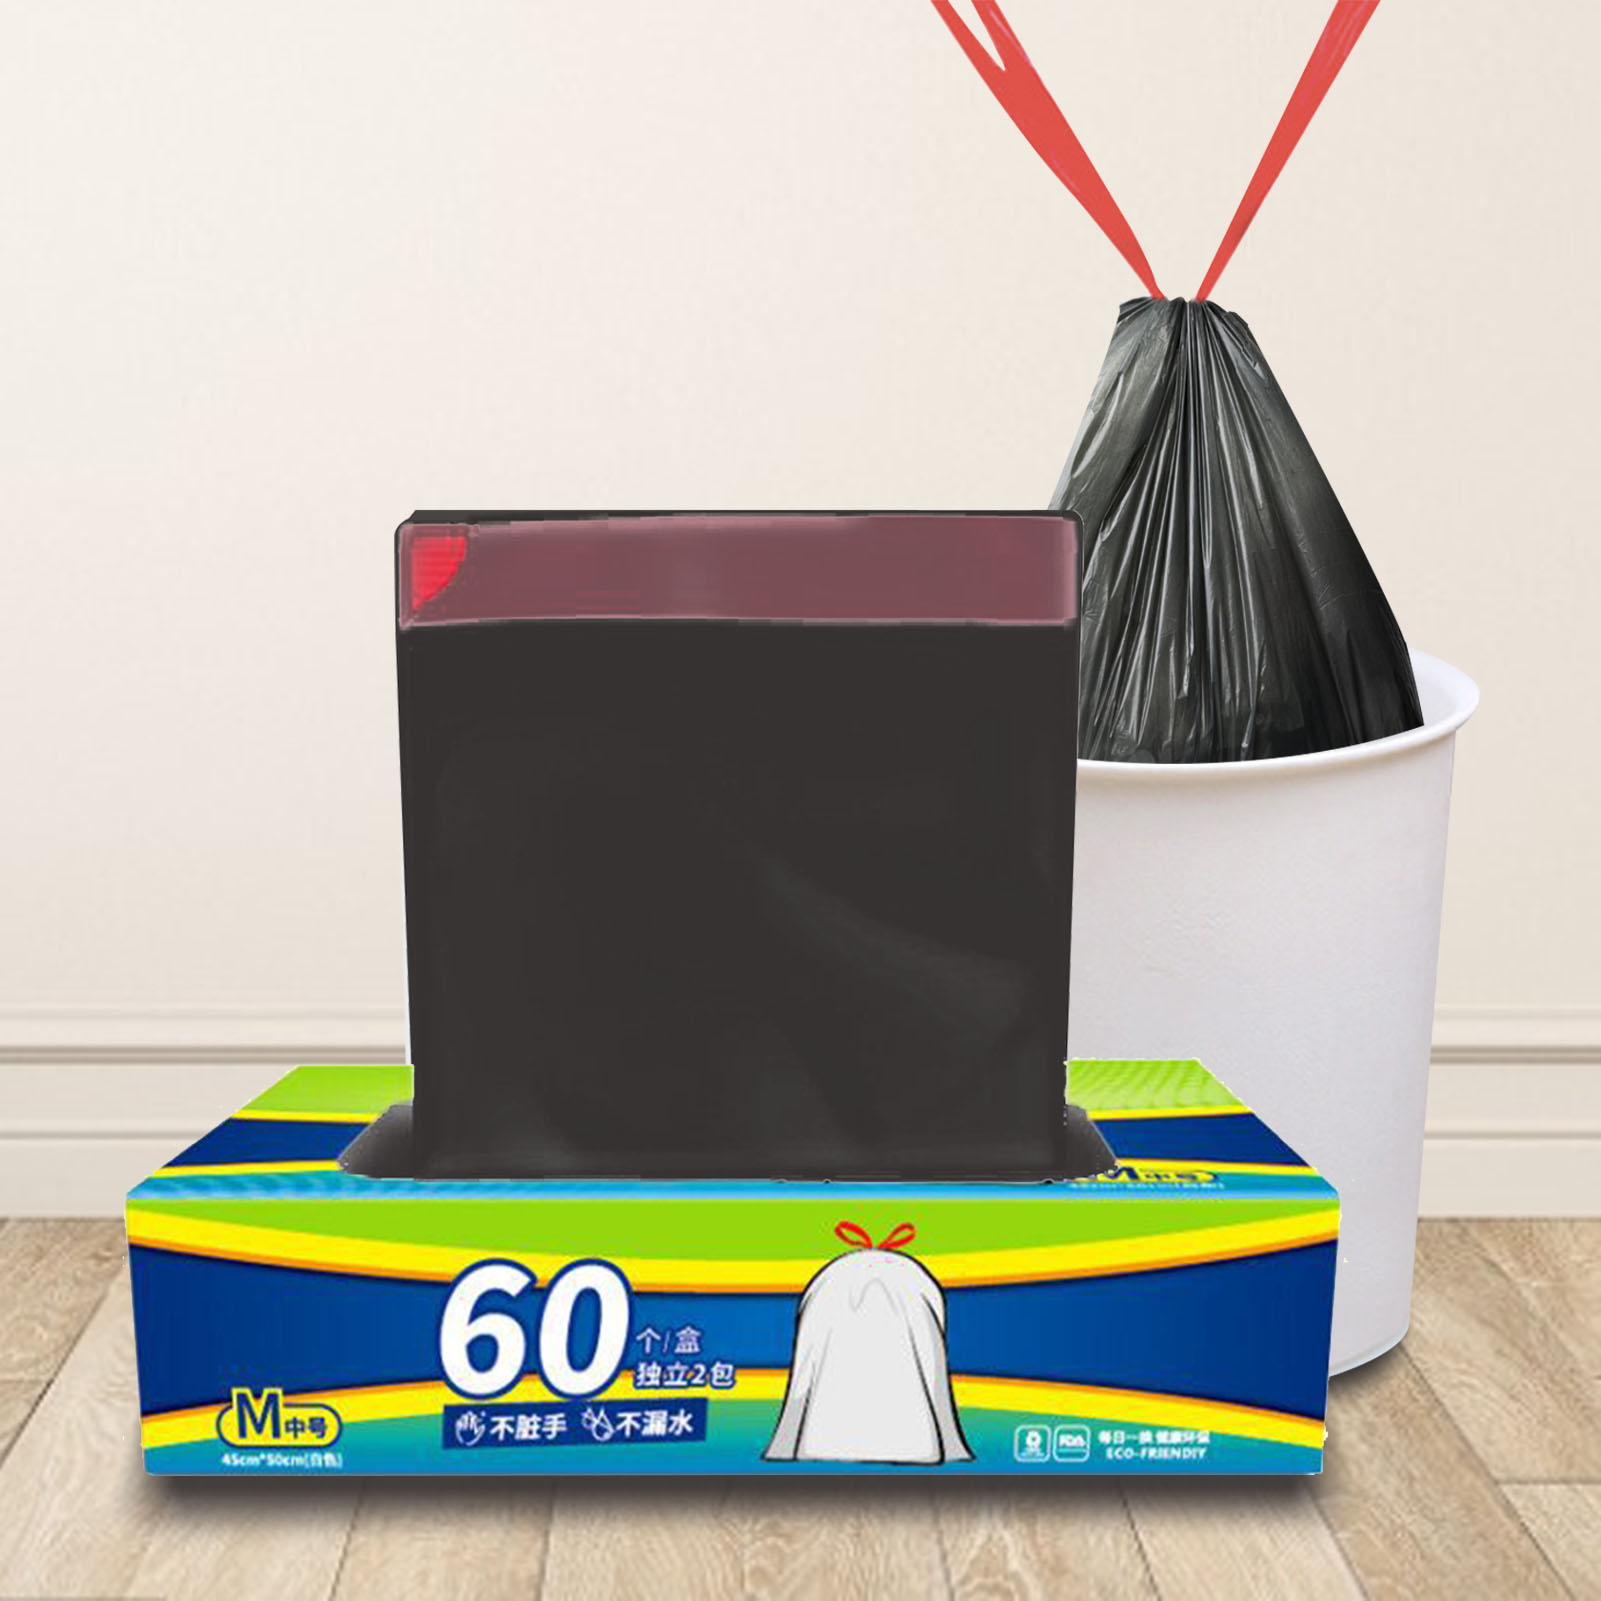 60Pcs/Box 45X50CM Garbage Bag High-quality Thickened Garbage Bin Can Be Bundled Garbage Bag Household Daily Use enlarge